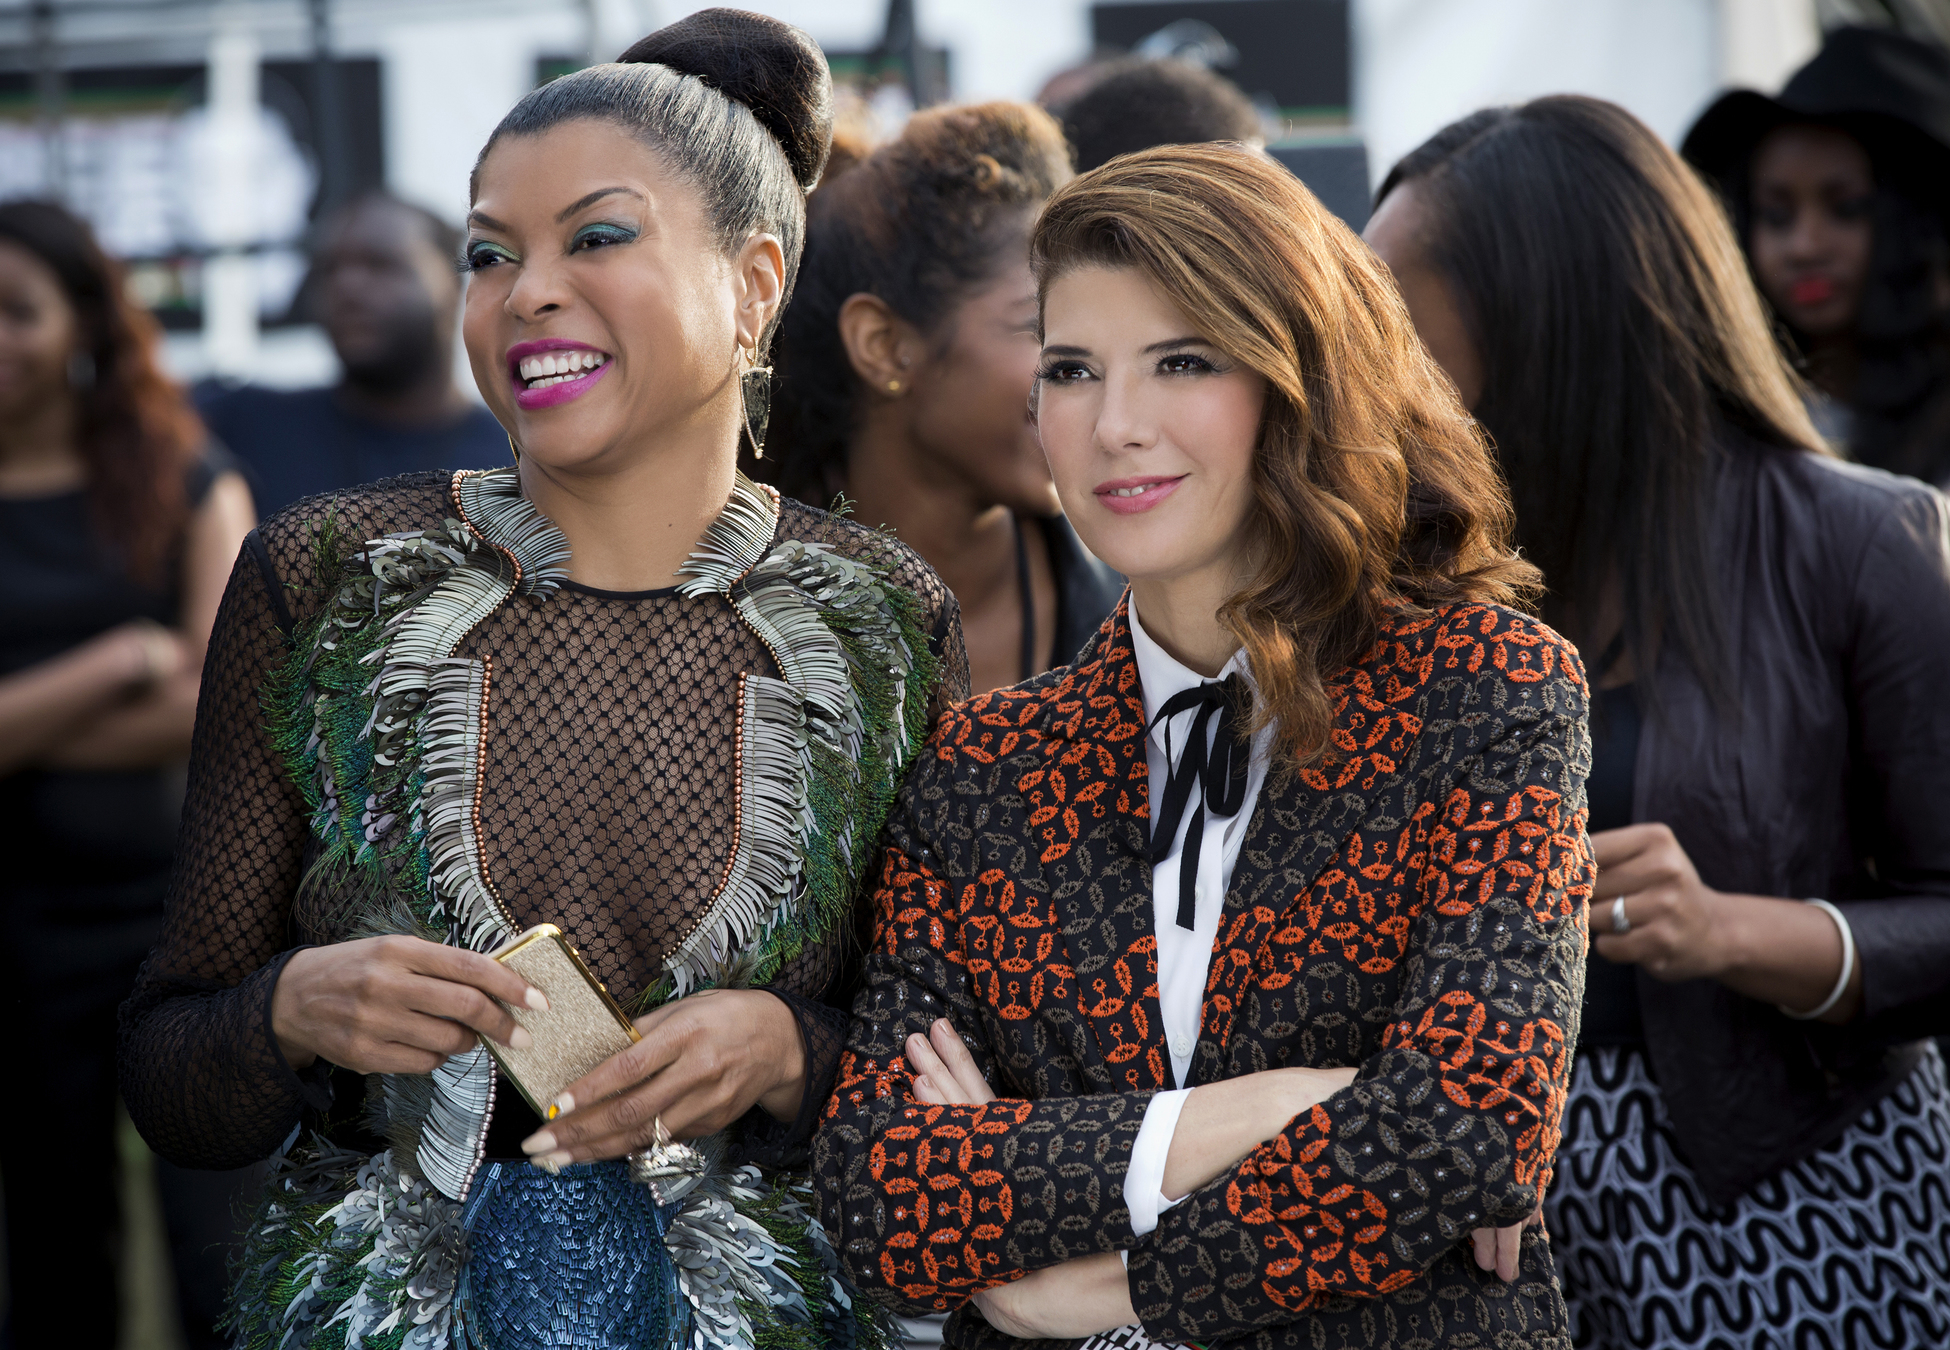 EMPIRE: Pictured L-R: Taraji P. Henson as Cookie Lyon and guest star Marisa Tomei as Mimi Whiteman in the ÒThe Devils Are HereÓ Season Two premiere episode of EMPIRE airing Wednesday, Sept. 23 (9:00-10:00 PM ET/PT) on FOX.  ©2015 Fox Broadcasting Co. Cr: Chuck Hodes/FOX.